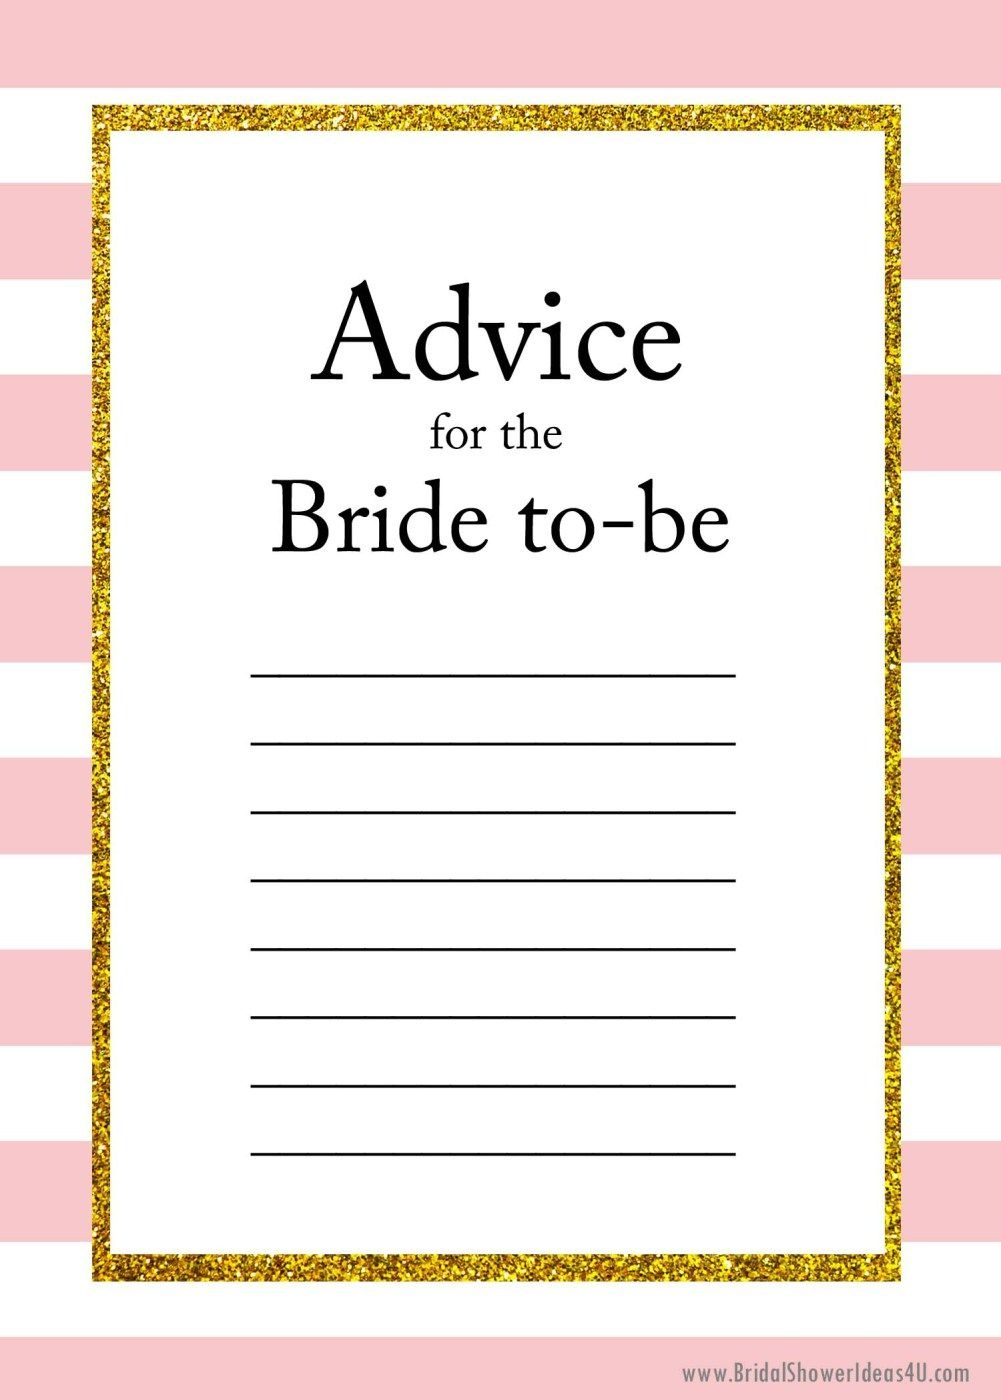 Free Printable Advice For The Bride To Be Cards | Friendship | Bride - Free Printable Bridal Shower Cards